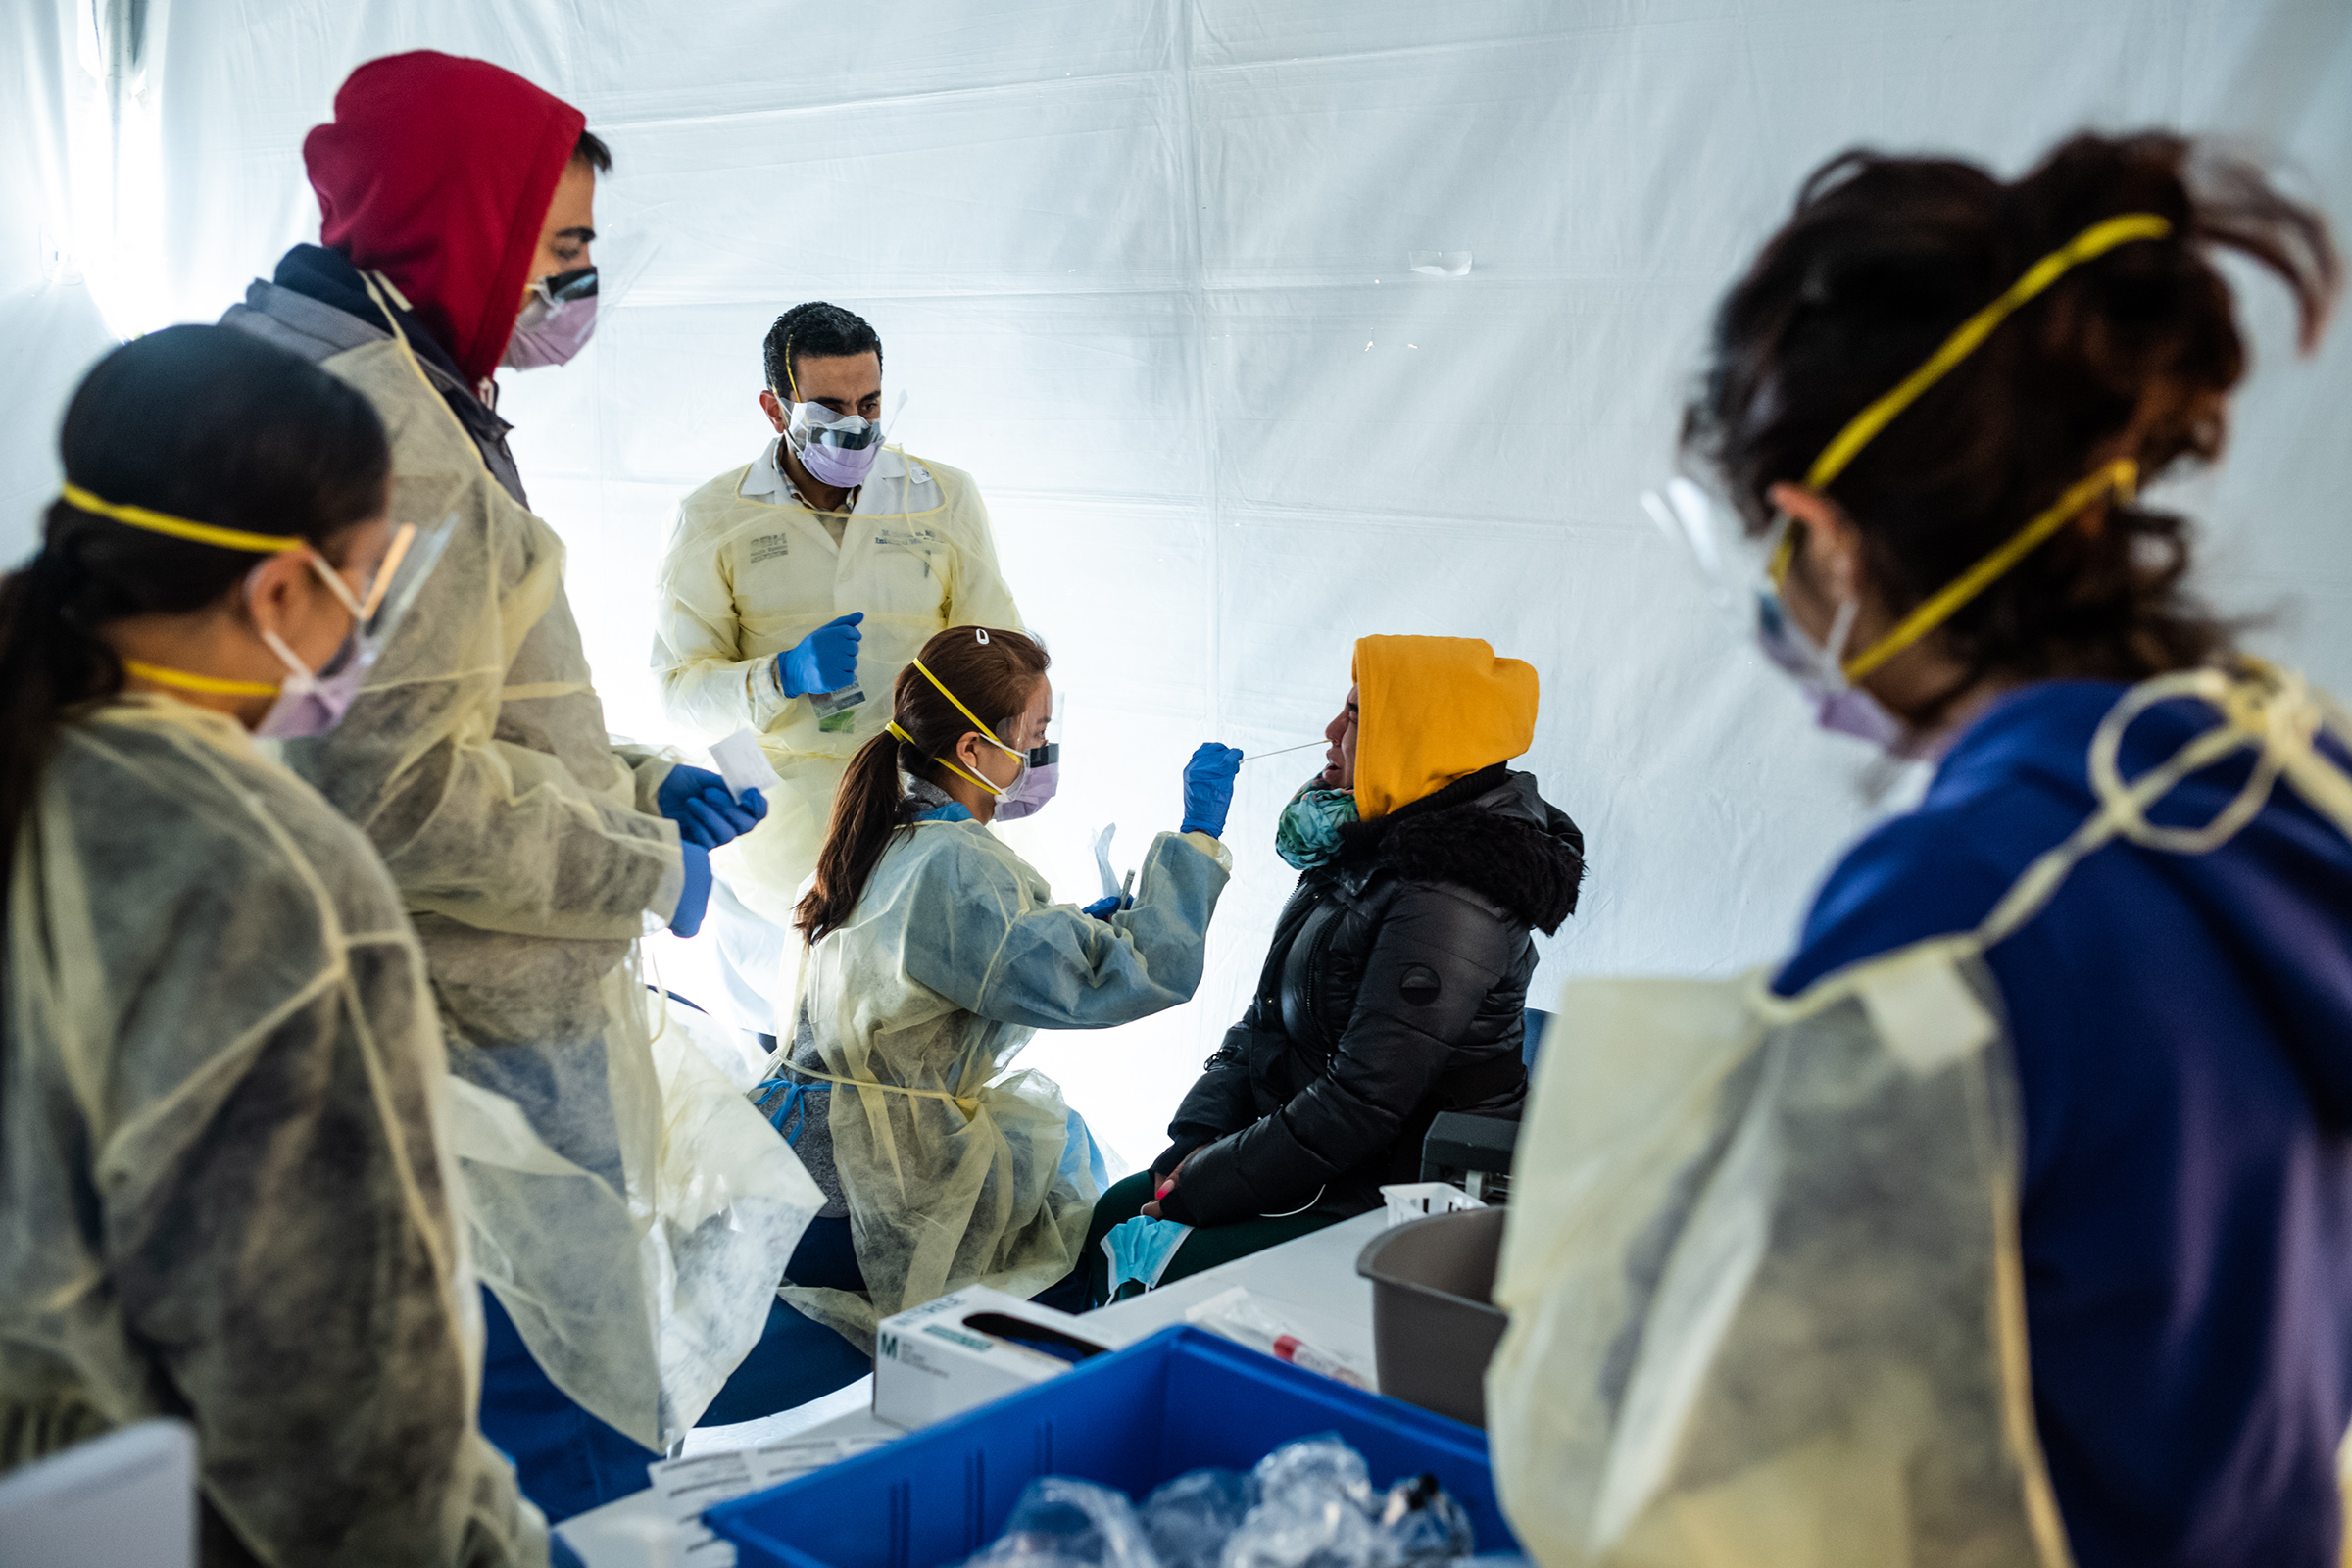 Doctors test hospital staff in set-up tents to triage possible COVID-19 patients outside before they enter the main Emergency department at St. Barnabas hospital in the Bronx on March 24, 2020 in New York City.